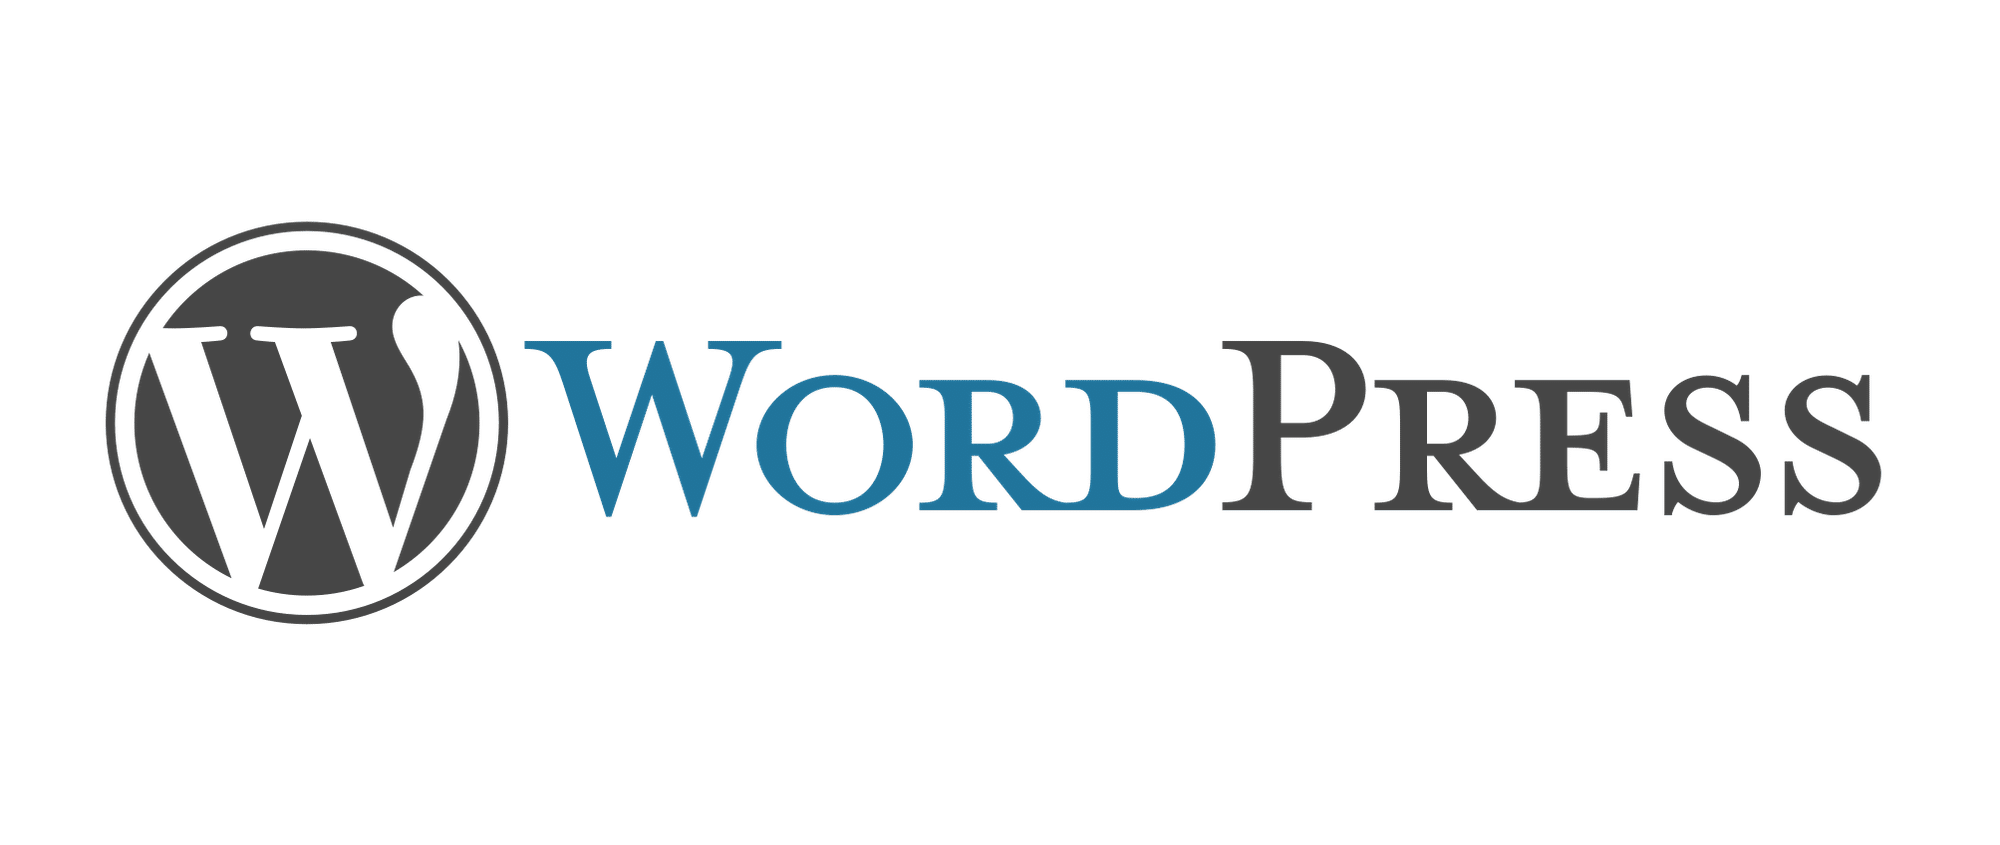 WordPress-logo-wordmark